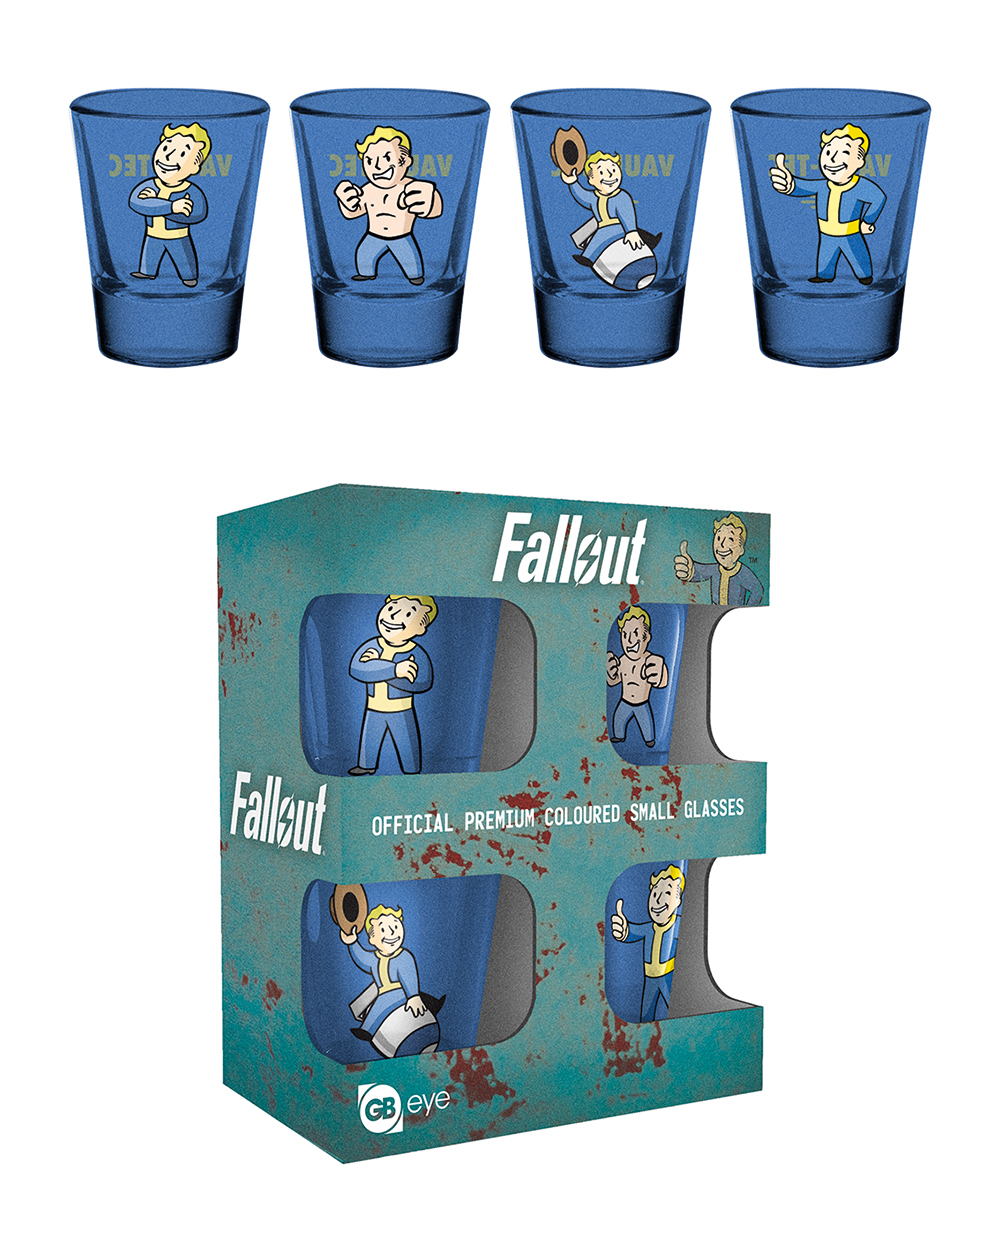 Fallout coloured shot glasses gifting